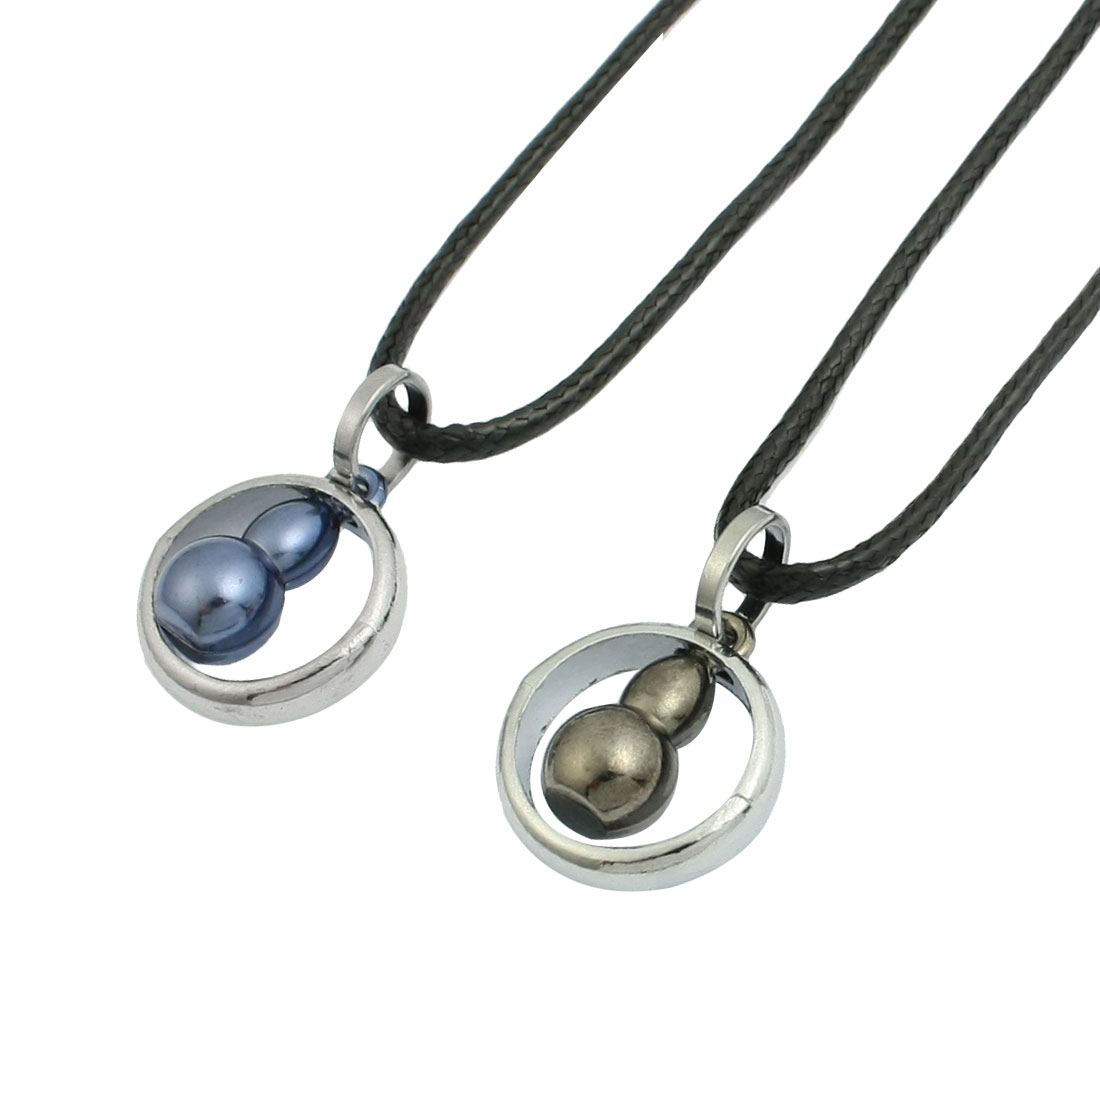 Pair Black String Gray Blue Gourd Silver Tone Ring Pendant Necklace for Couples